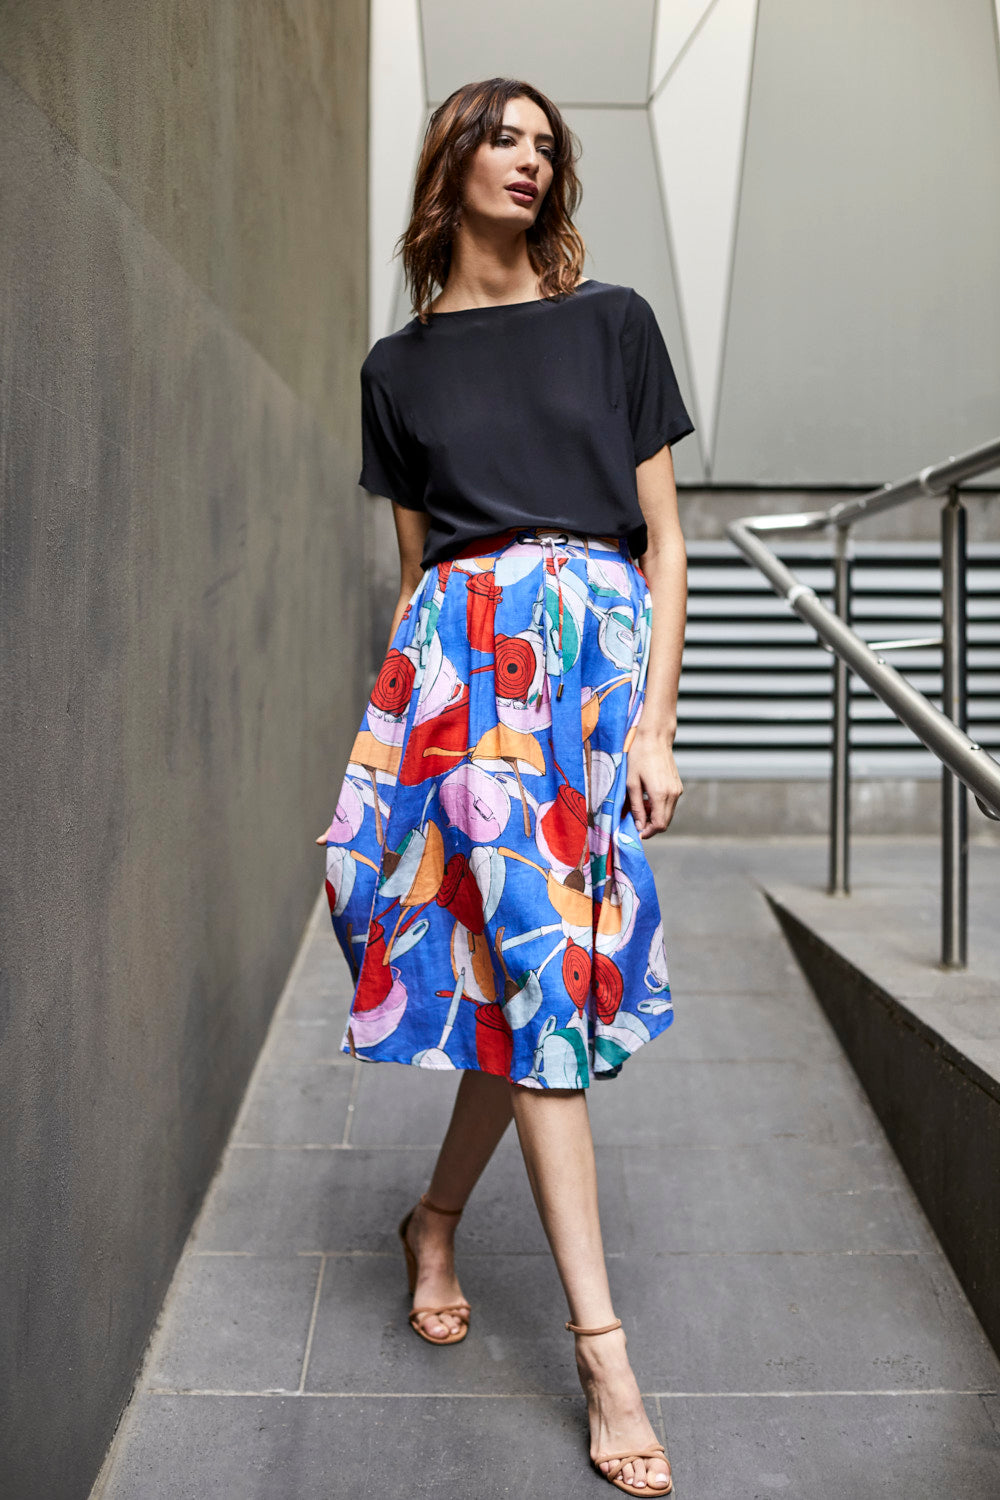 DEVOI linen printed skirt with pockets. Skirt with elasticated waist.